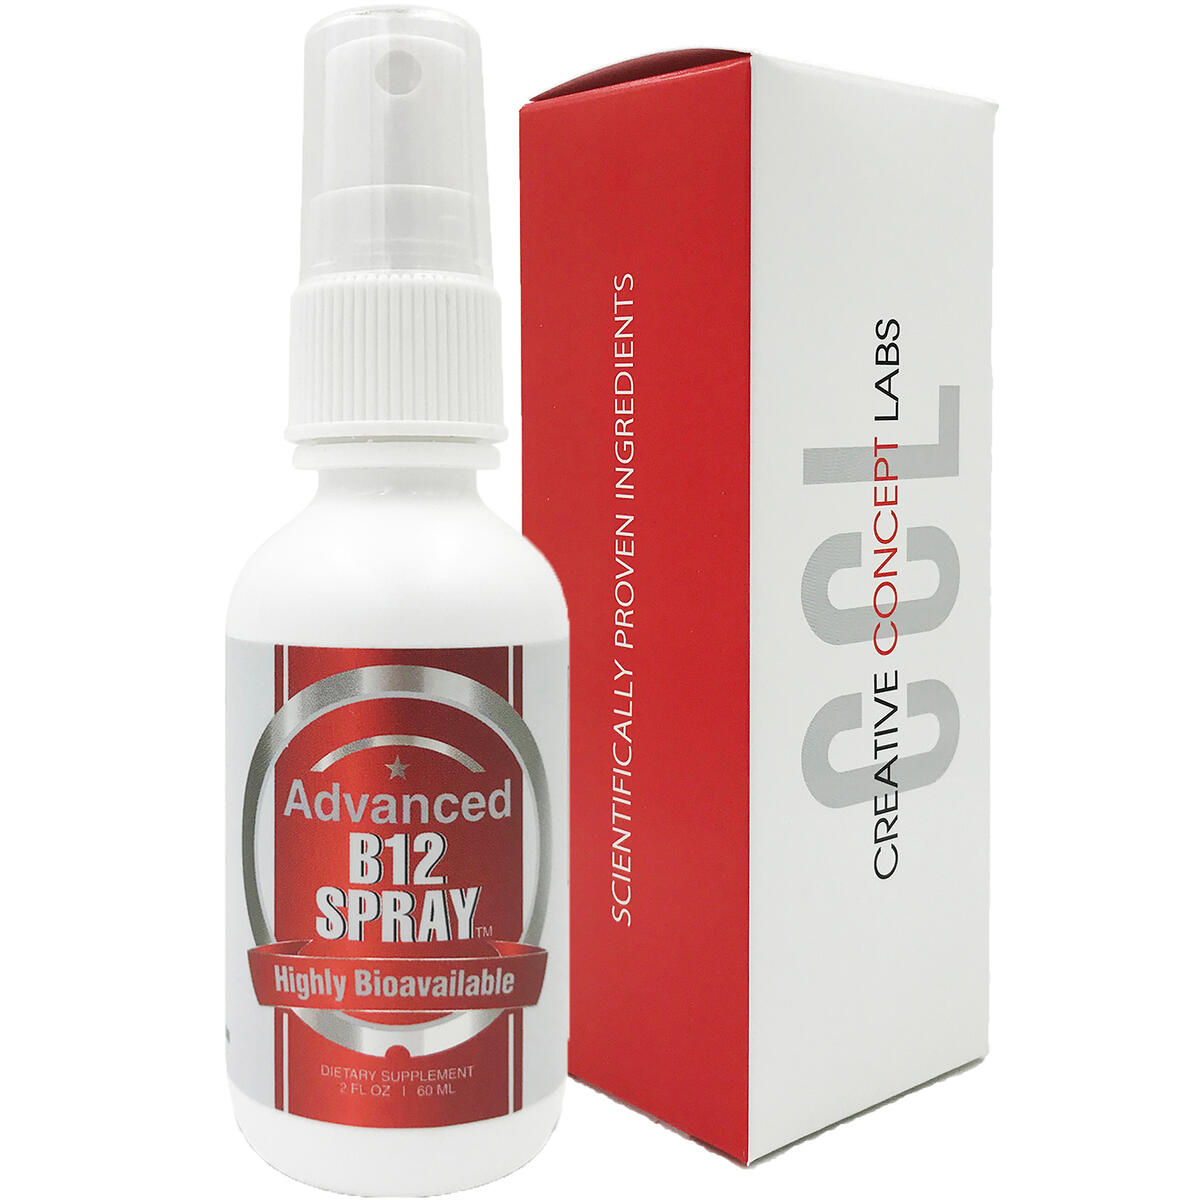 Advanced Vitamin B12 Spray